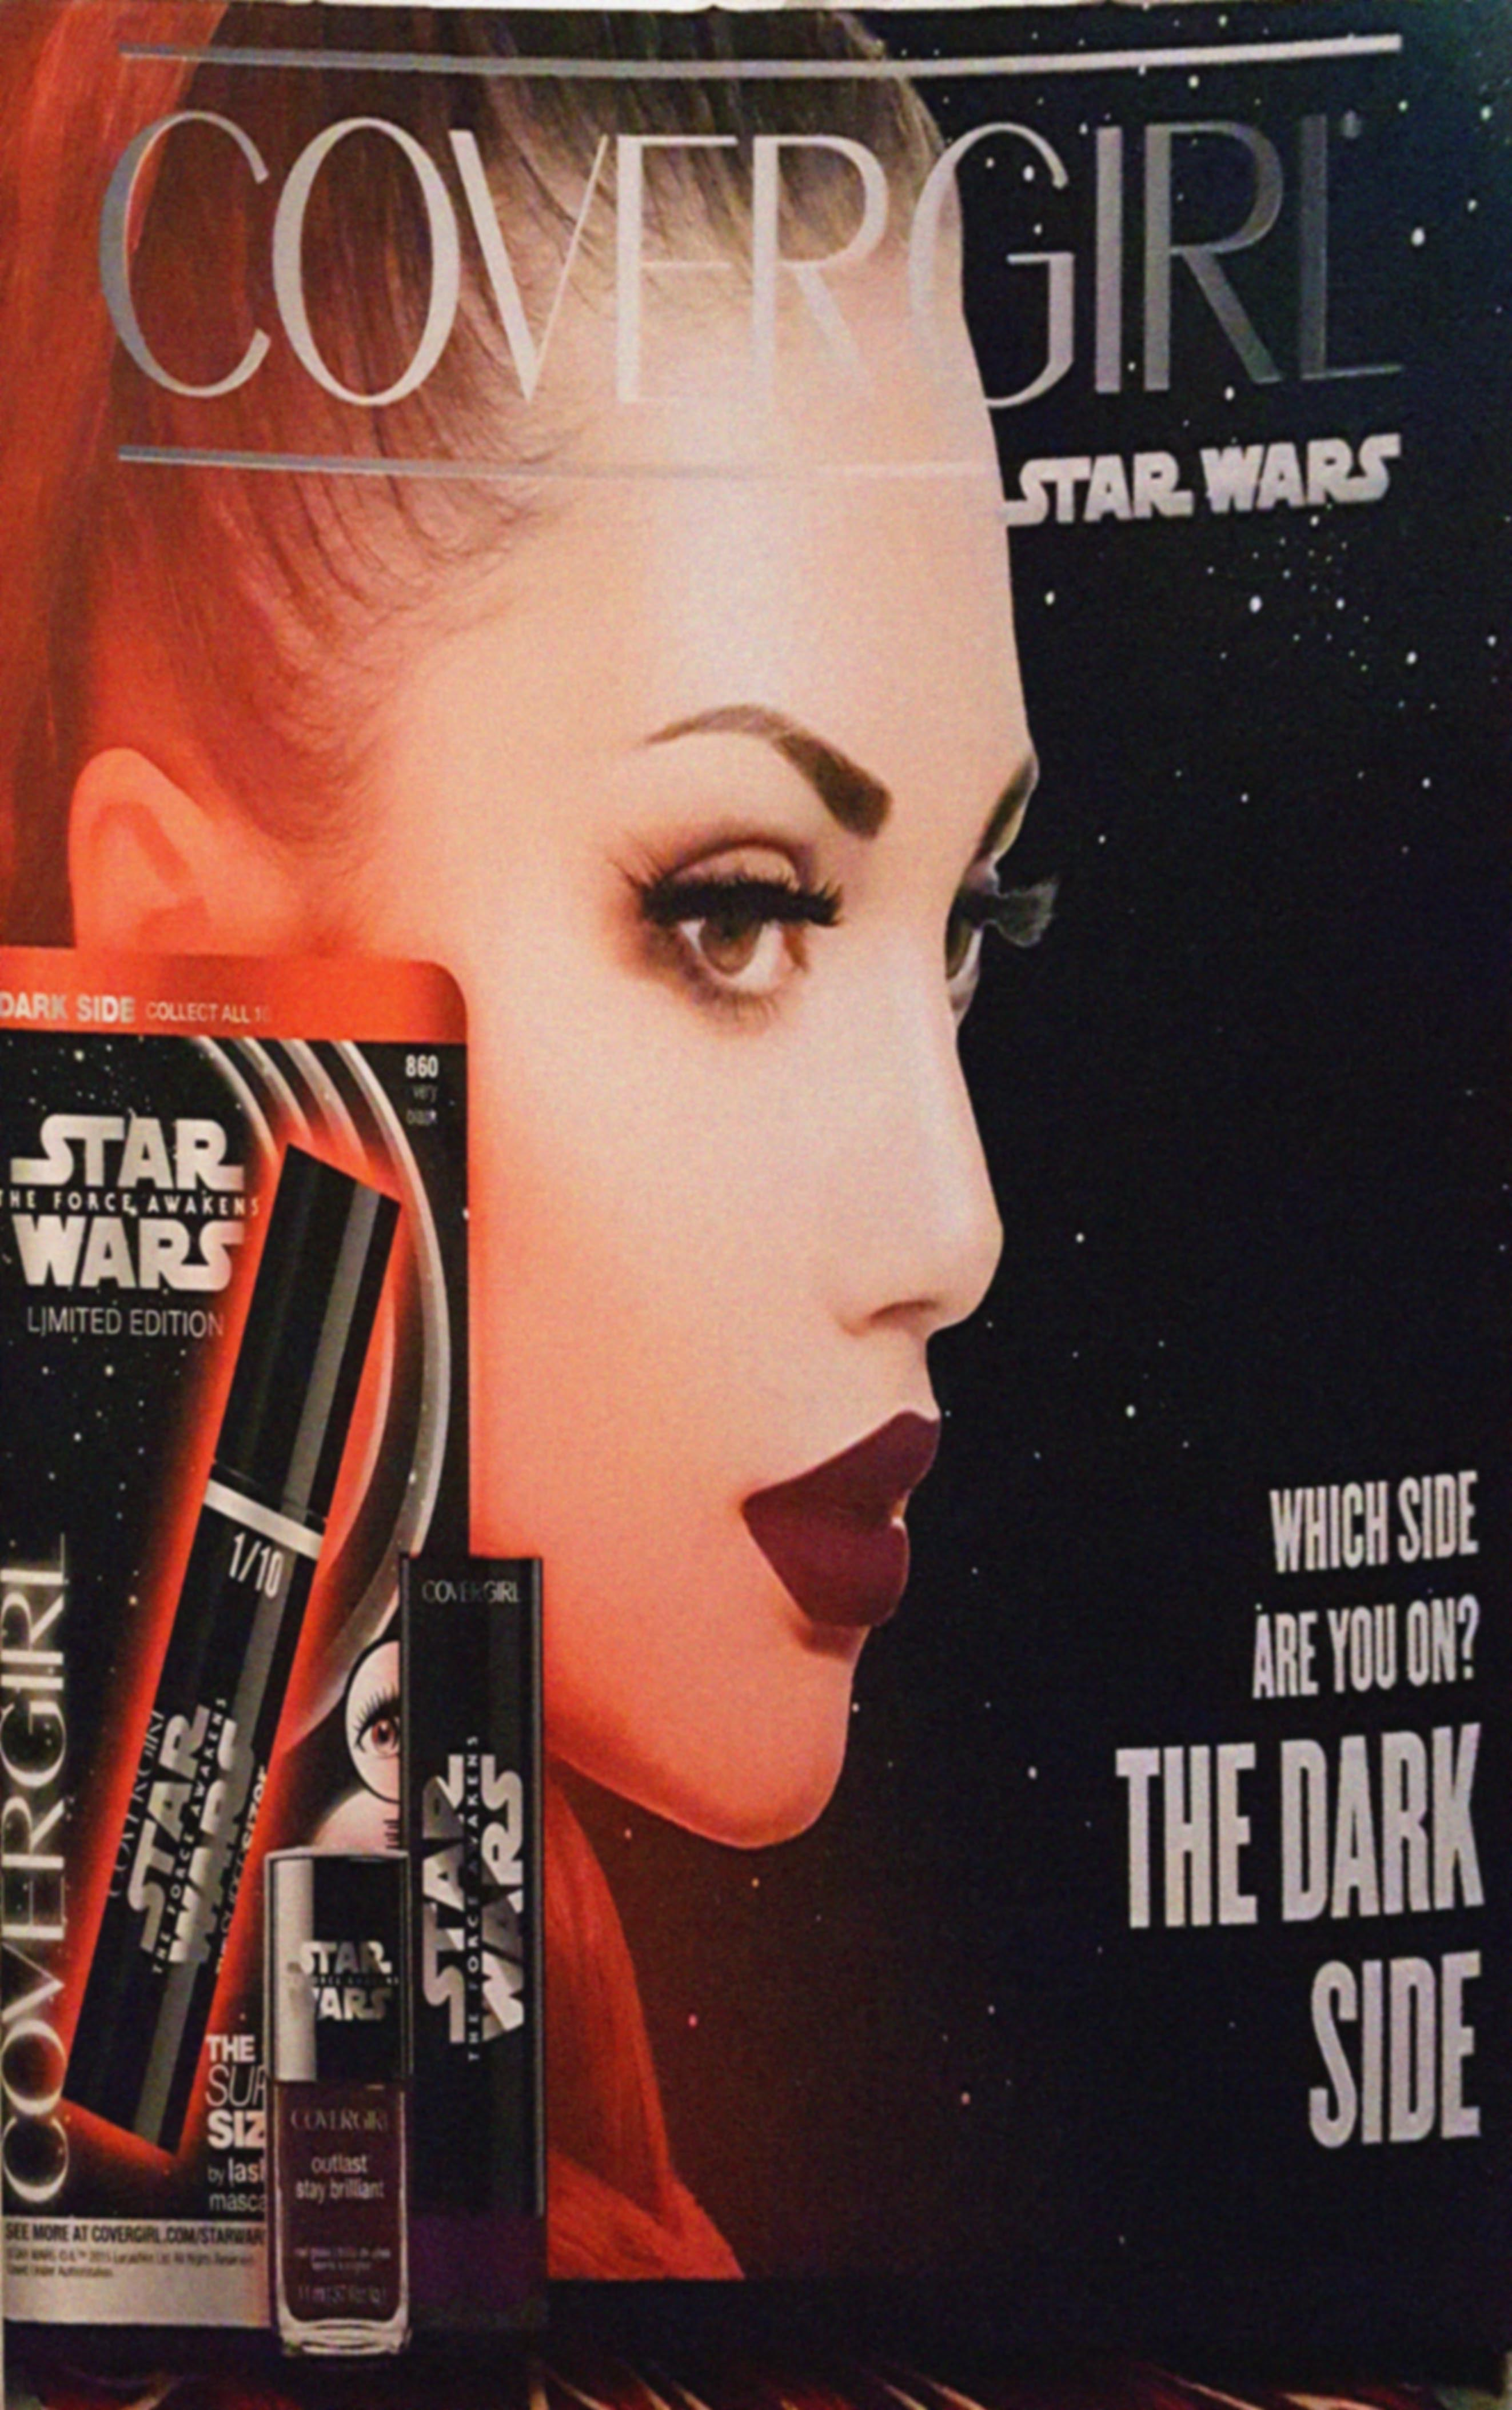 covergirl star wars makeup